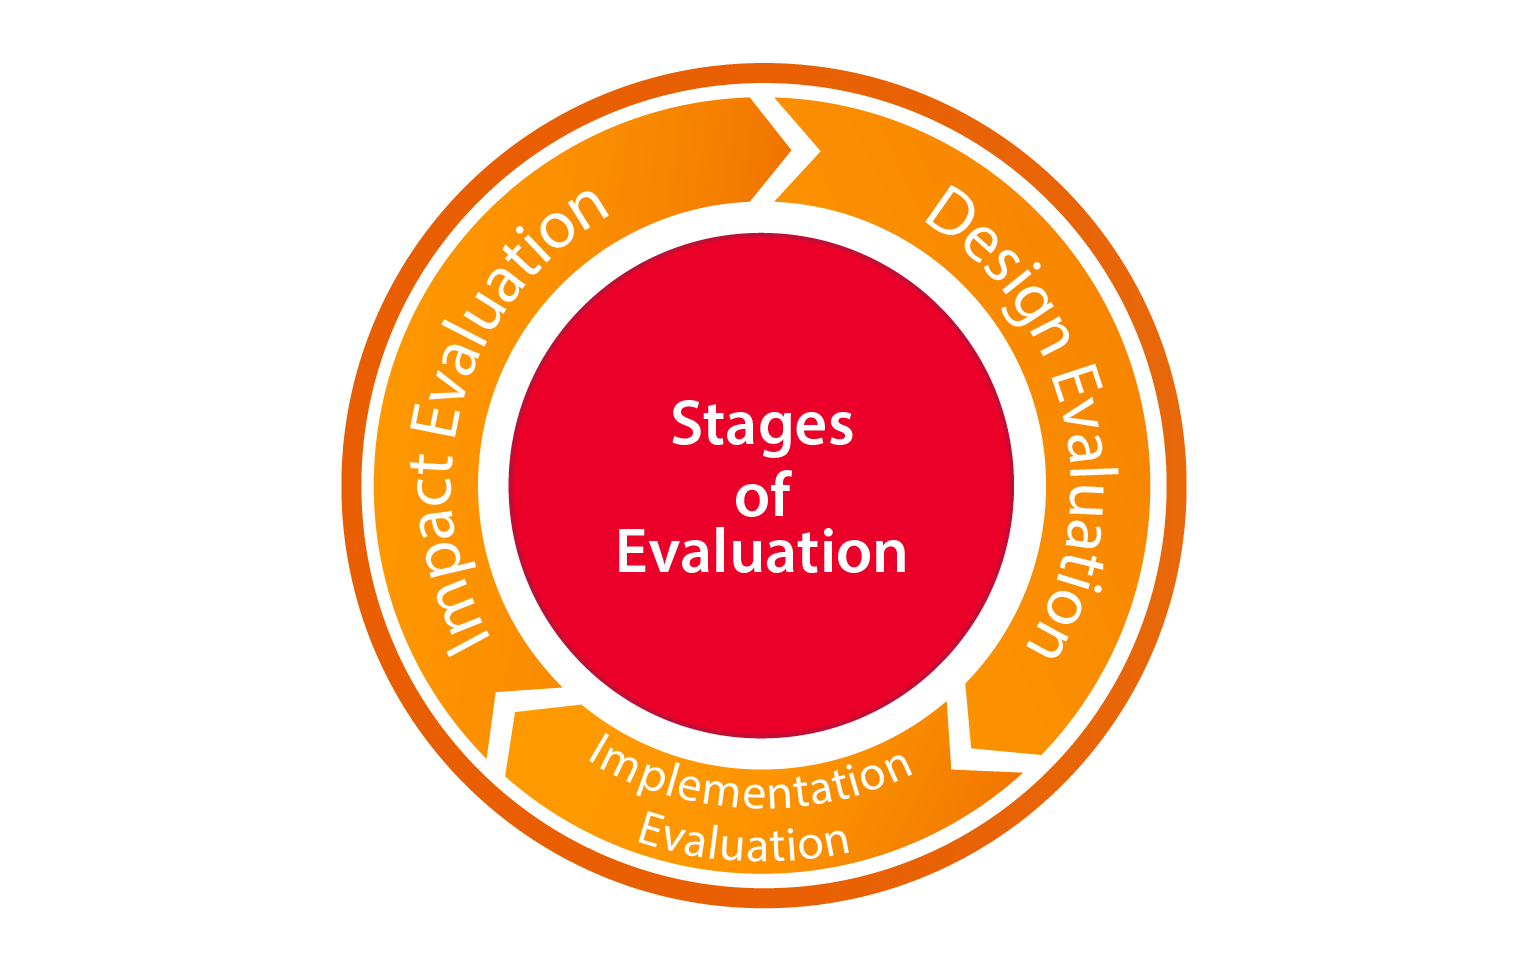 Three stages of monitoring and evaluation in a circle, indicating a continuous cycle